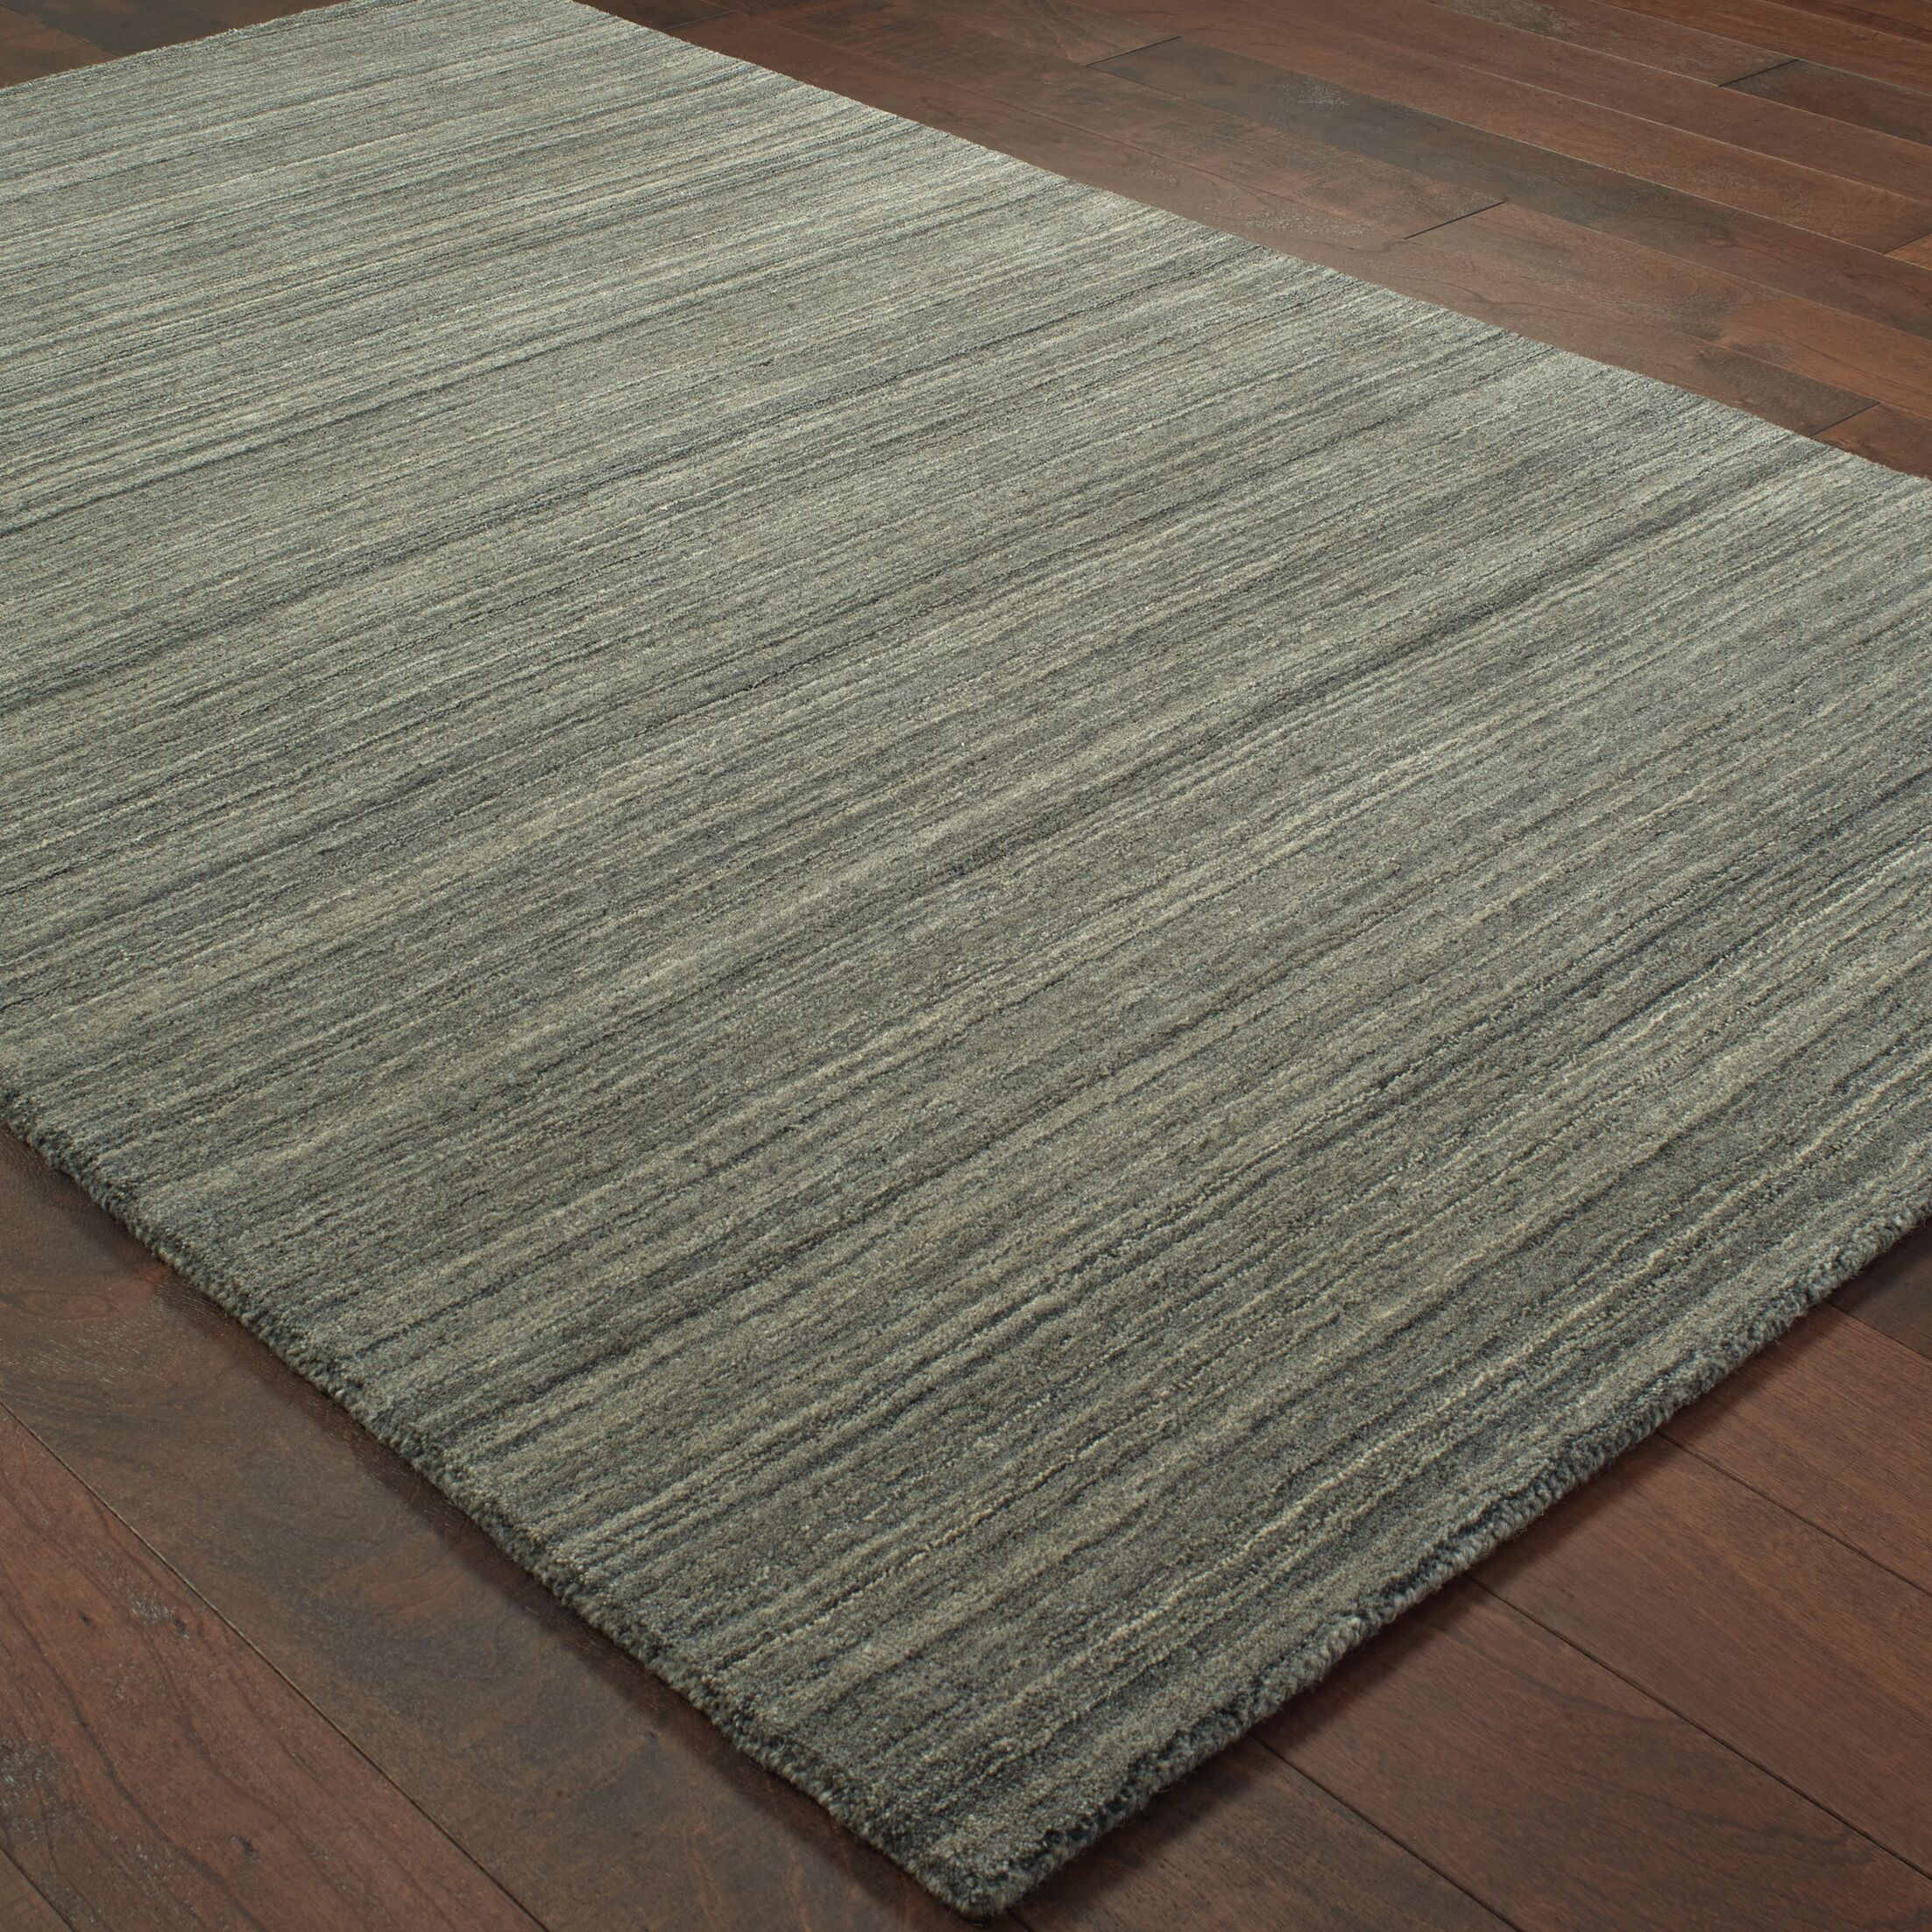 Alanna Hand-Tufted Wool Charcoal Area Rug Rug Size: Rectangle 3'6